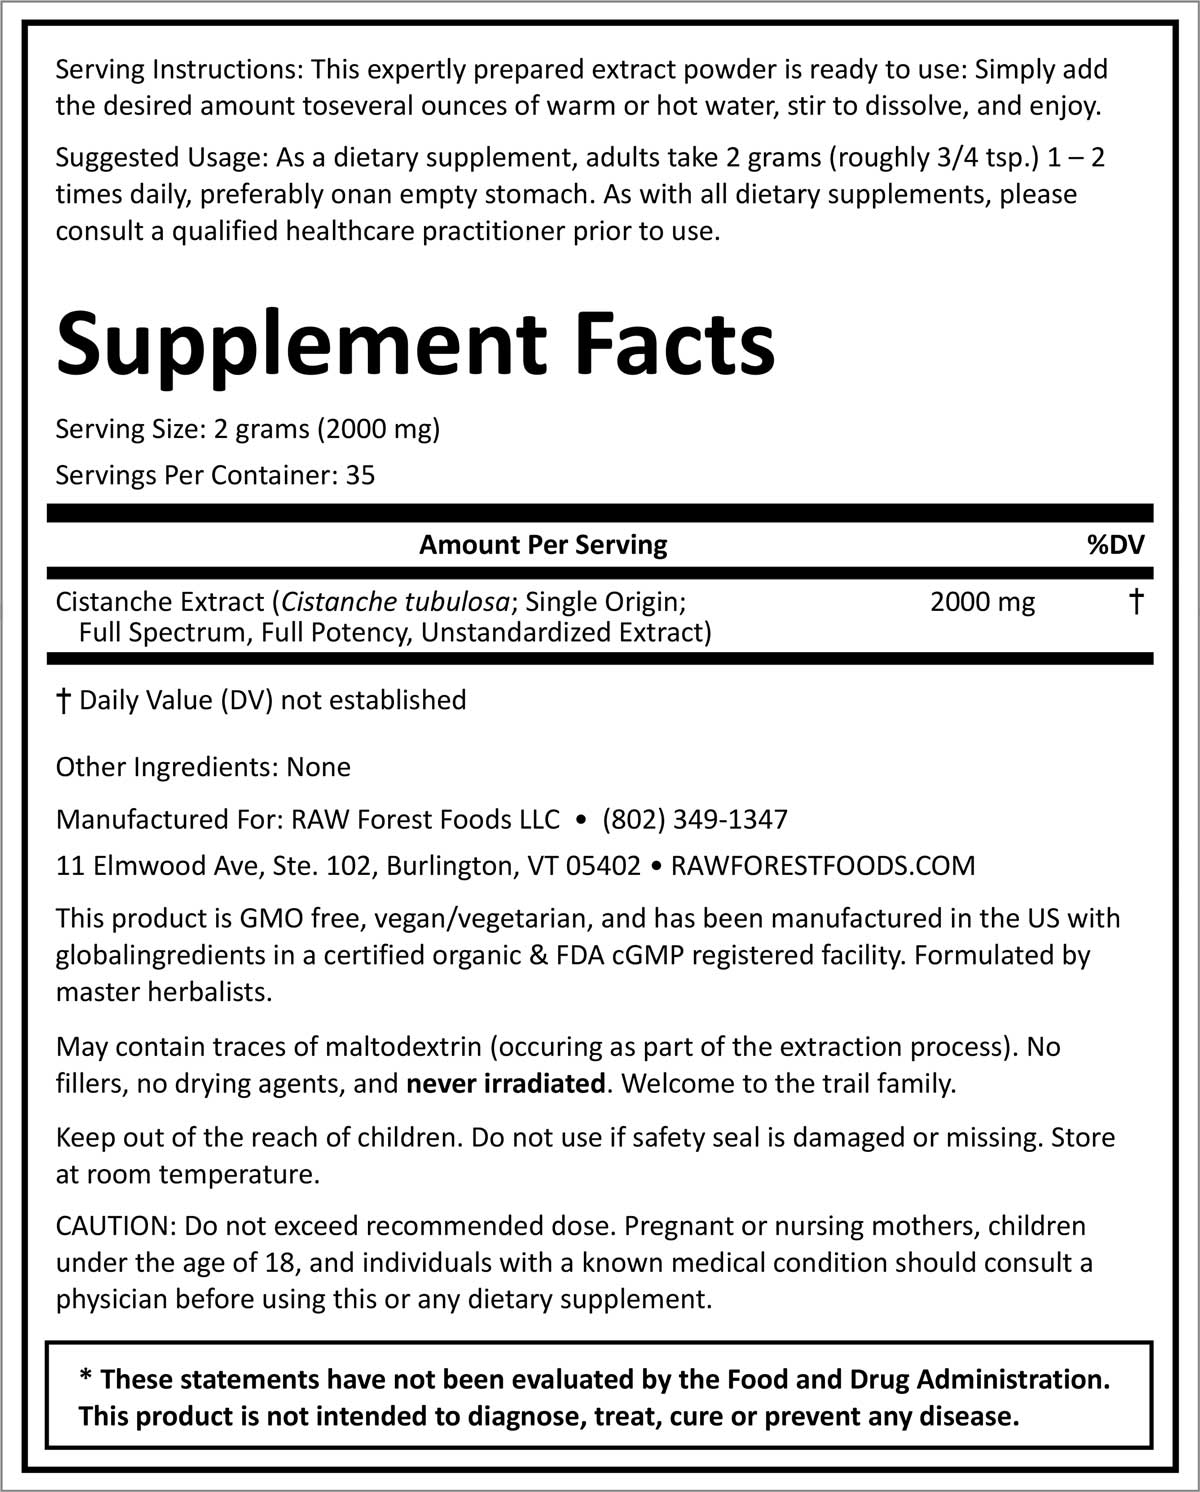 cistanche-tubulosa-extract-powder-supplement-facts.jpg